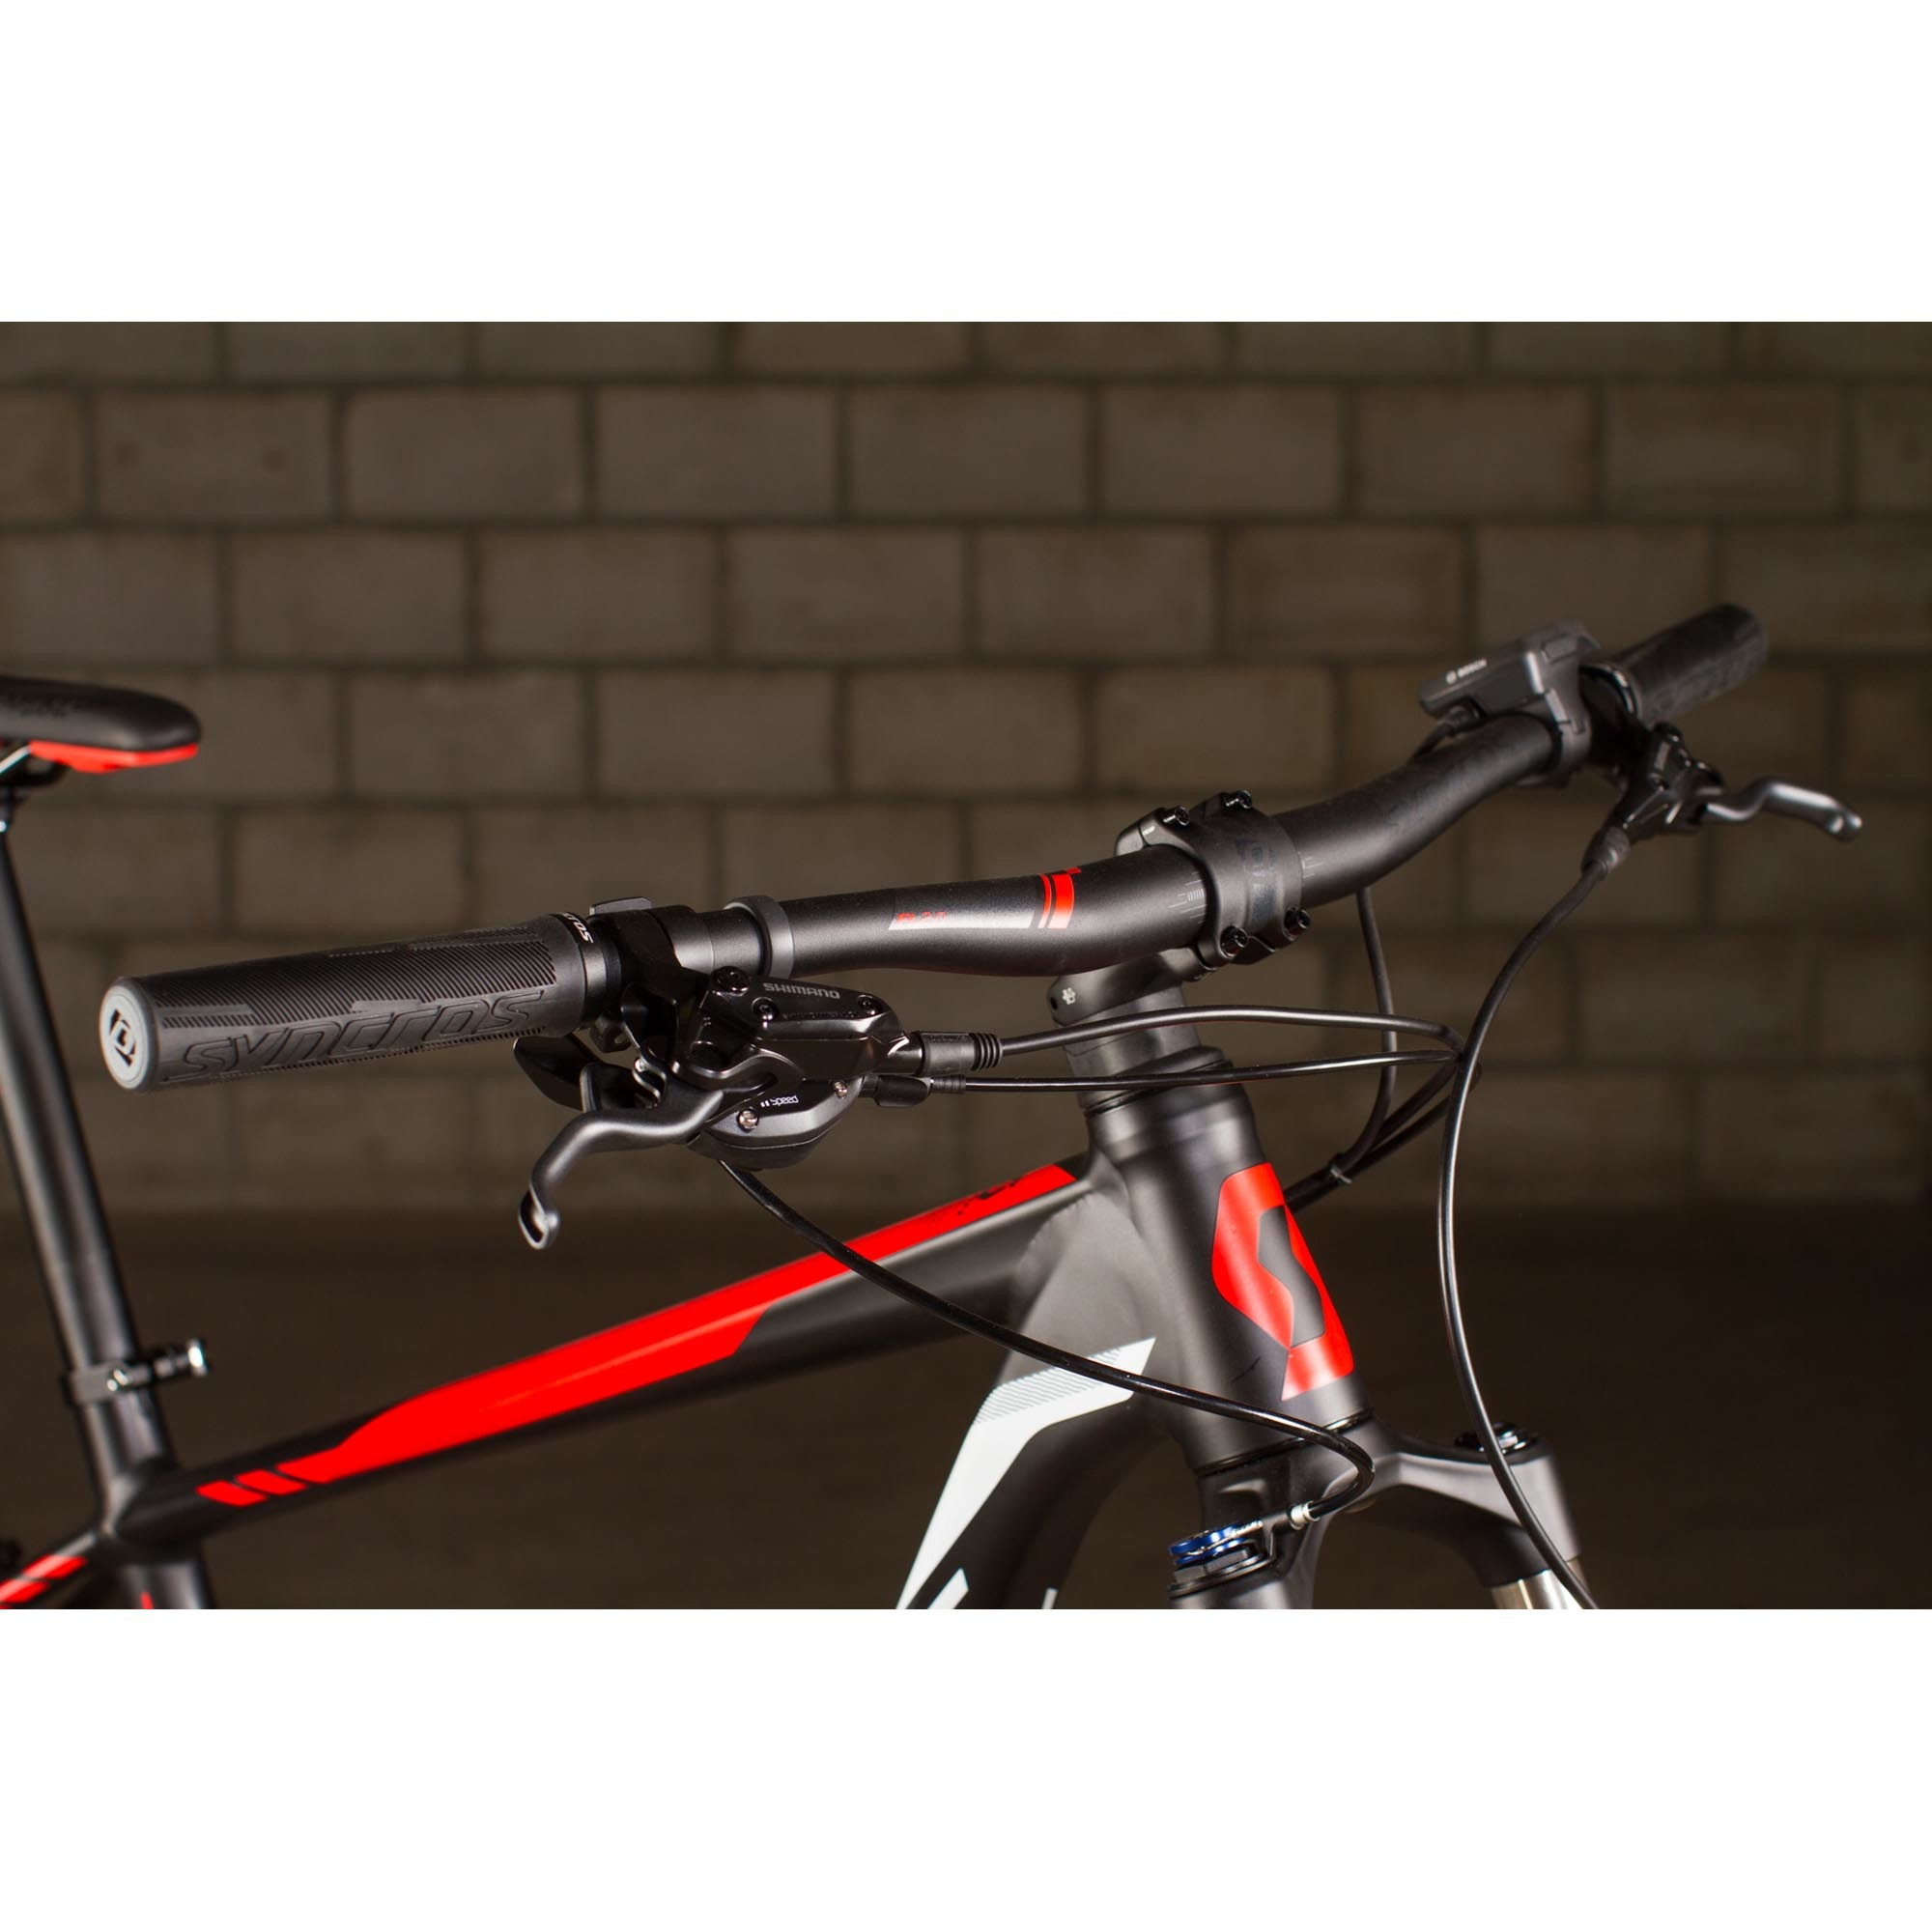 SCOTT E-Scale 930 Bike